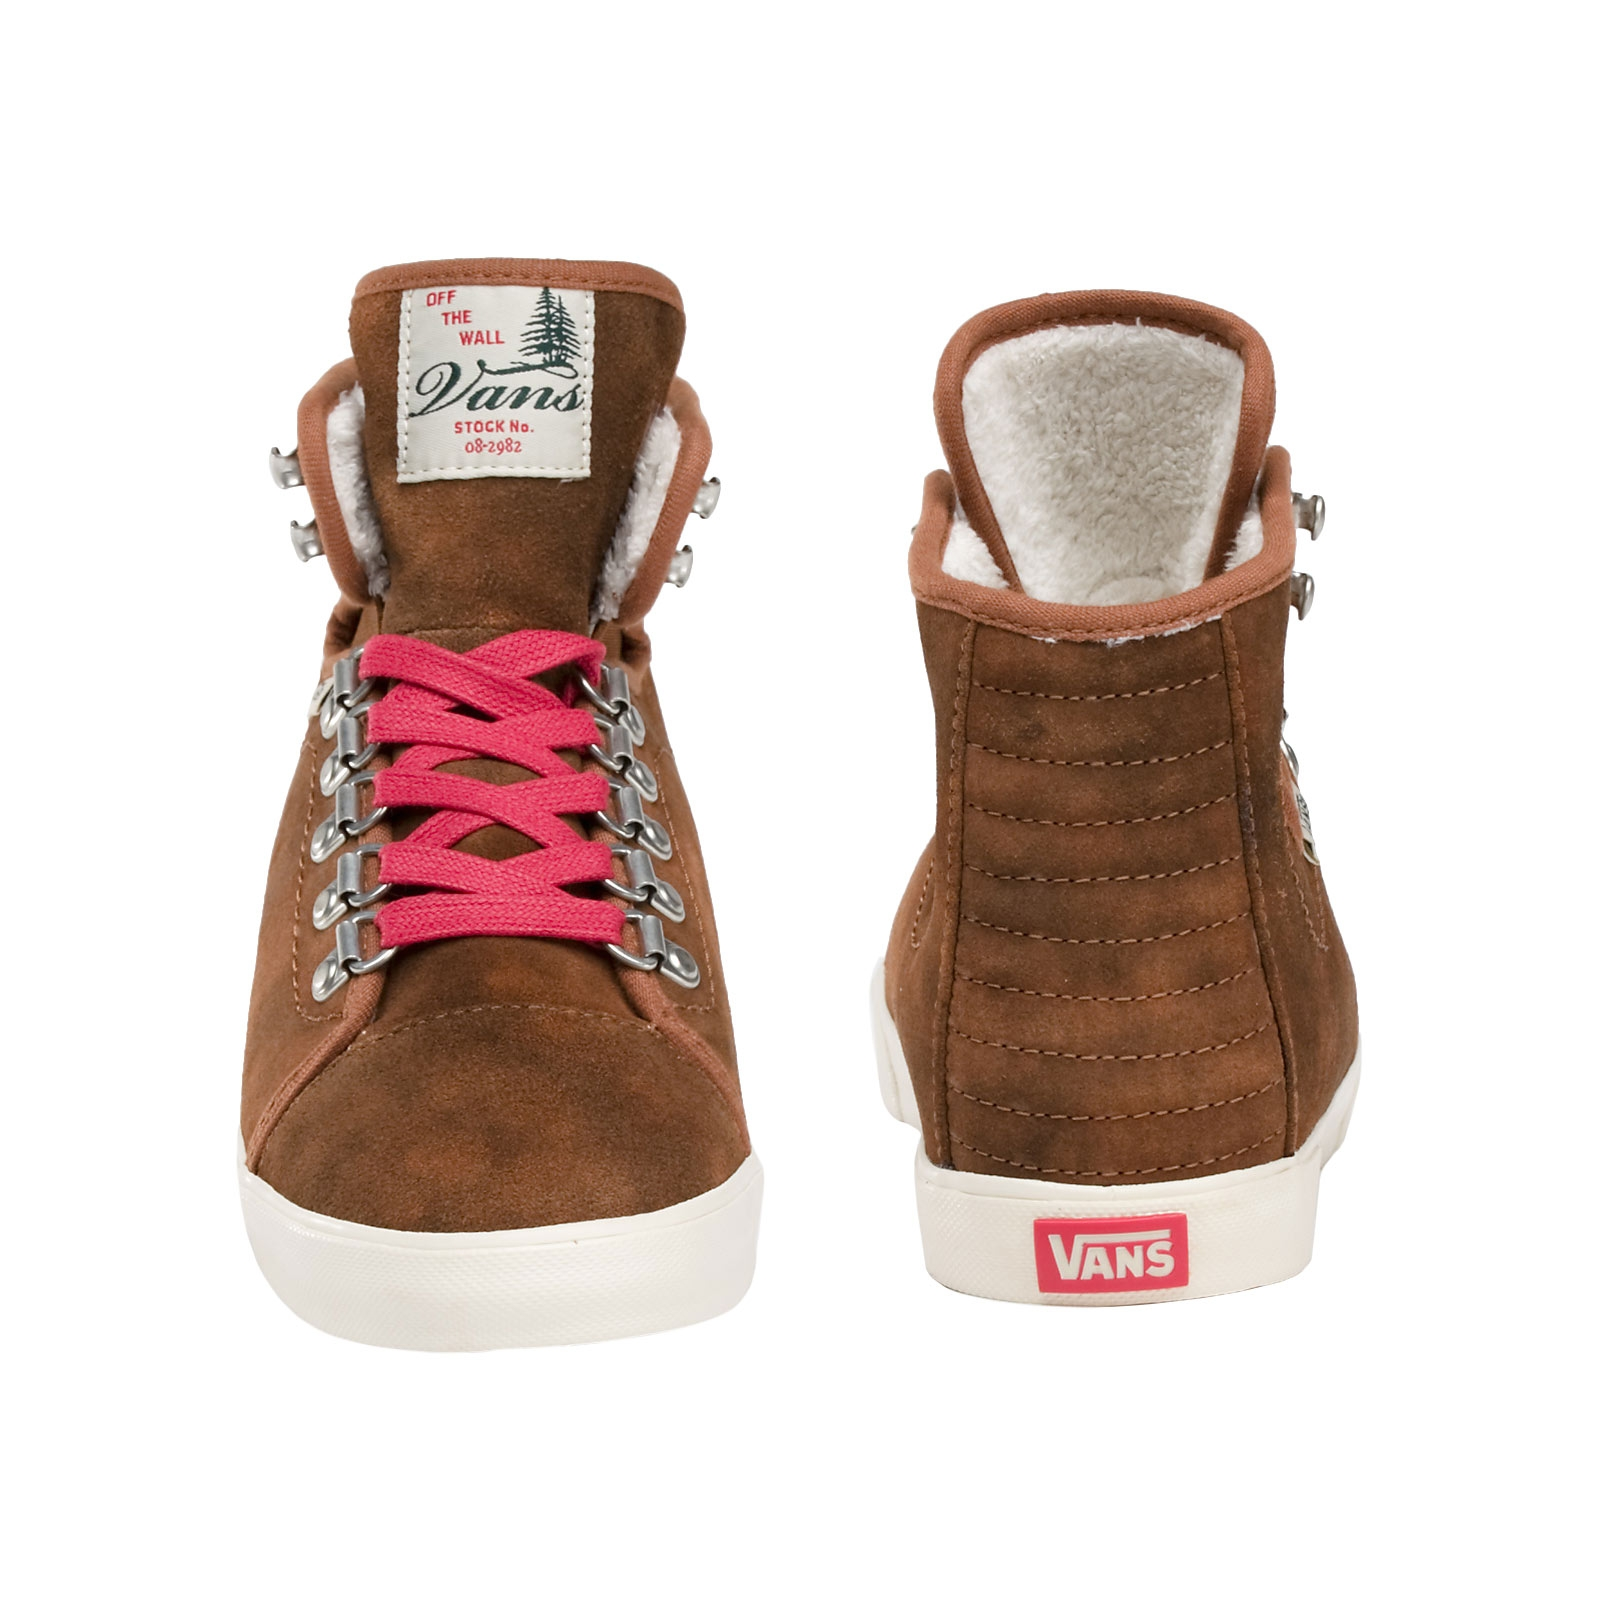 09533c5c29c969 Vans Hadley Hiker brown